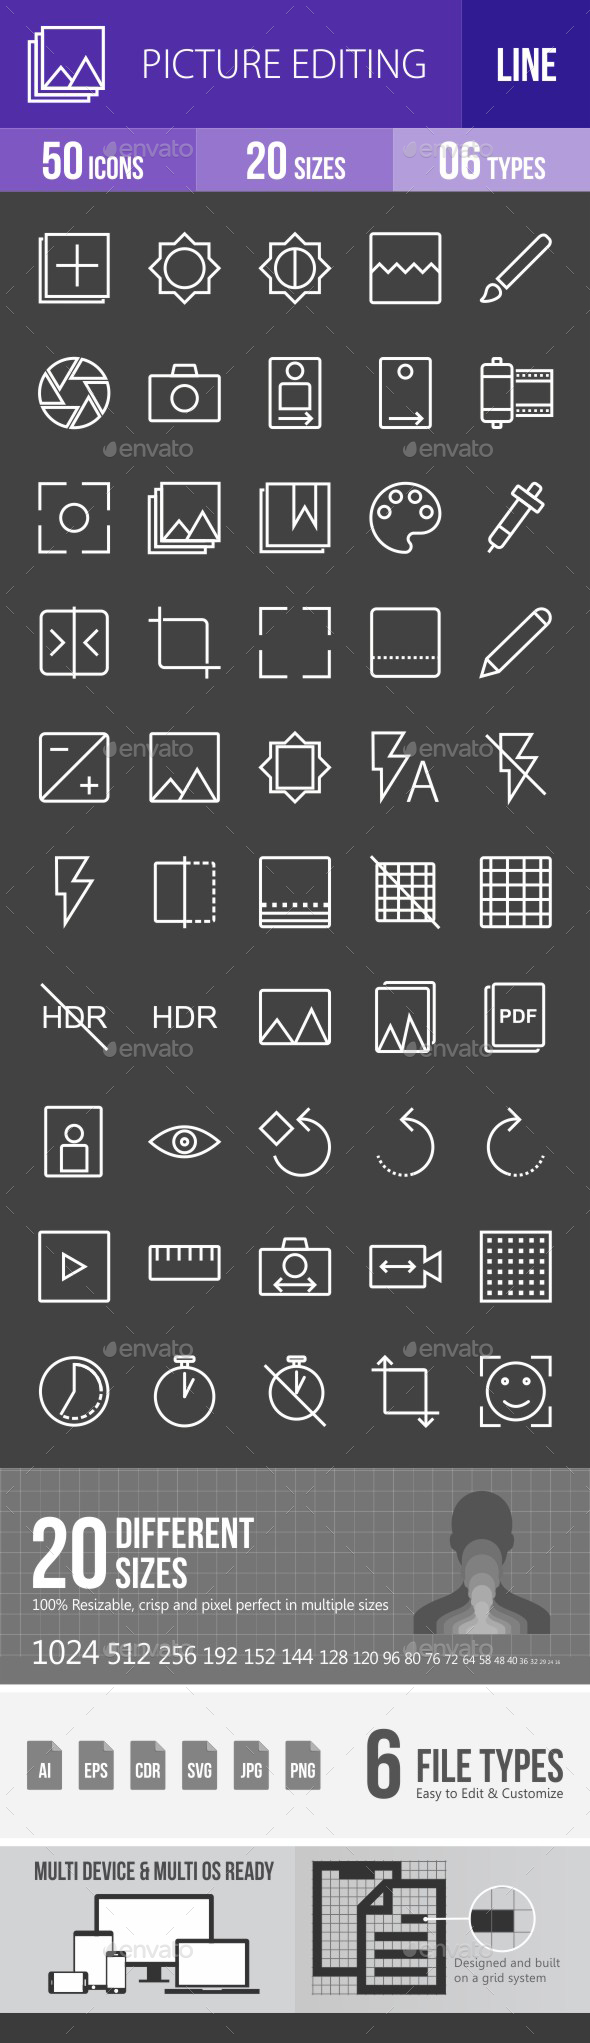 Picture Editing Line Inverted Icons - Icons